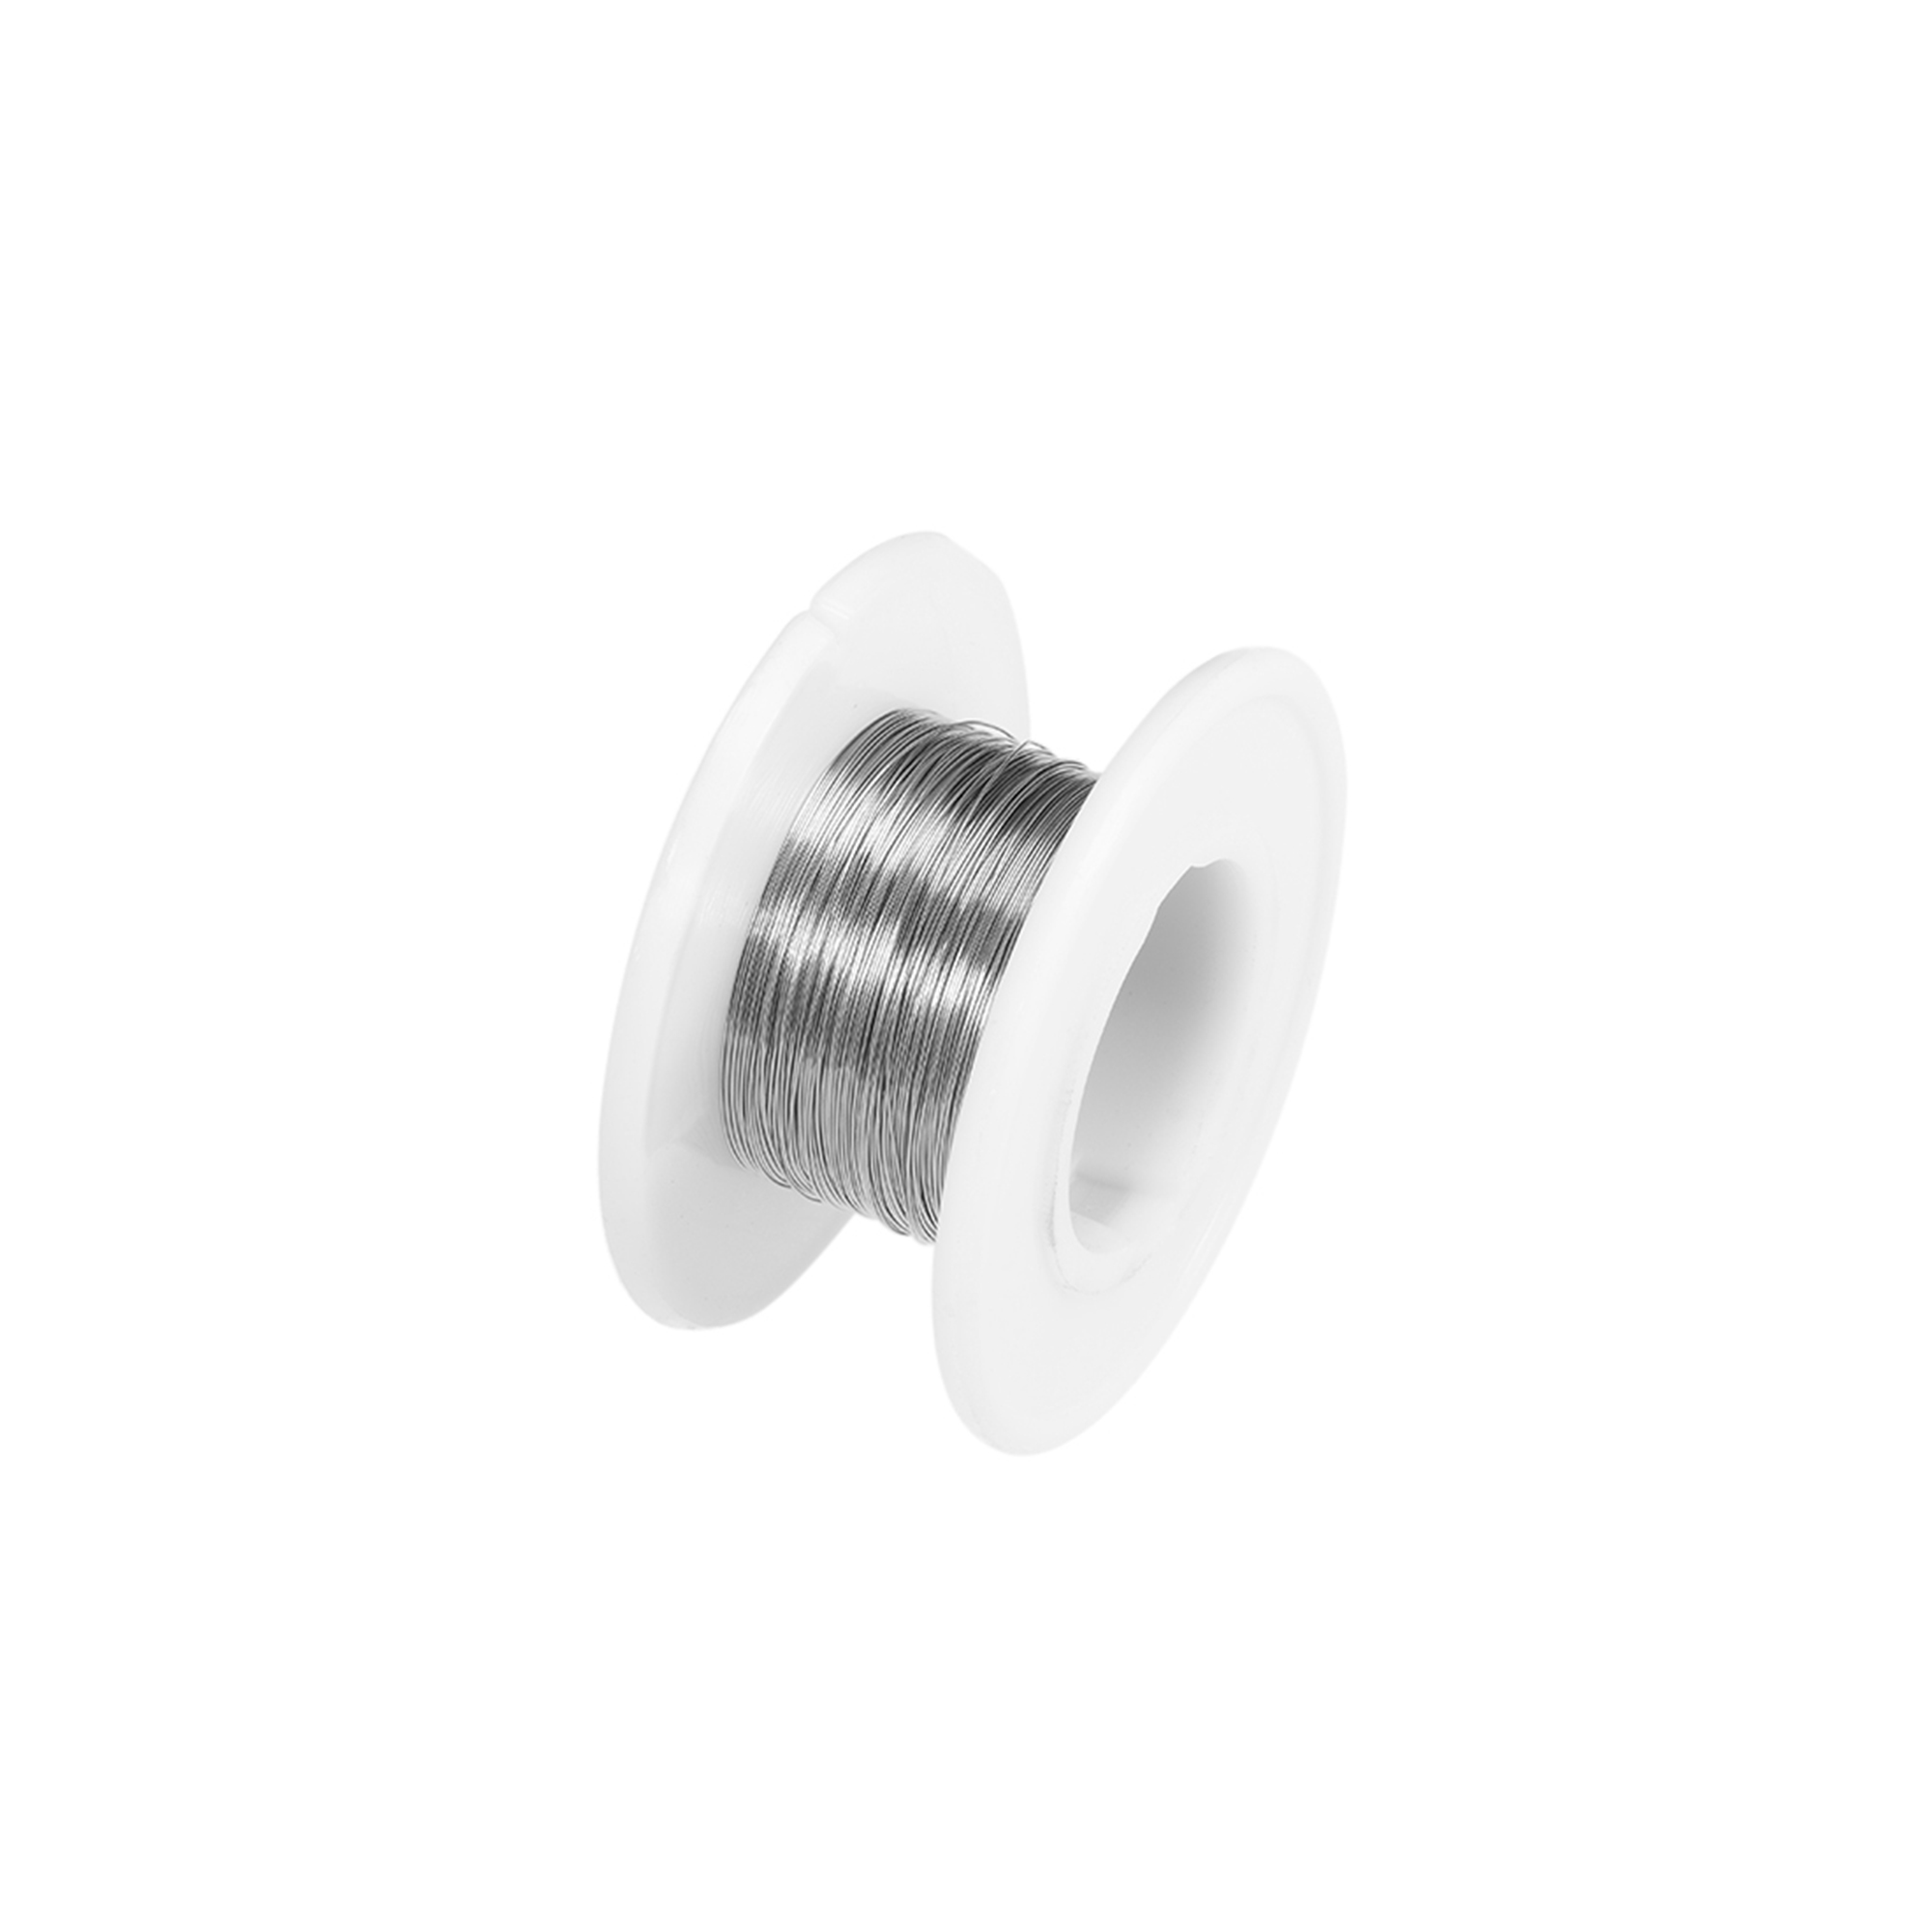 0.2mm 32AWG Heating Resistor Wire Nichrome Resistance Wires for Heating Elements 82ft - image 4 de 4